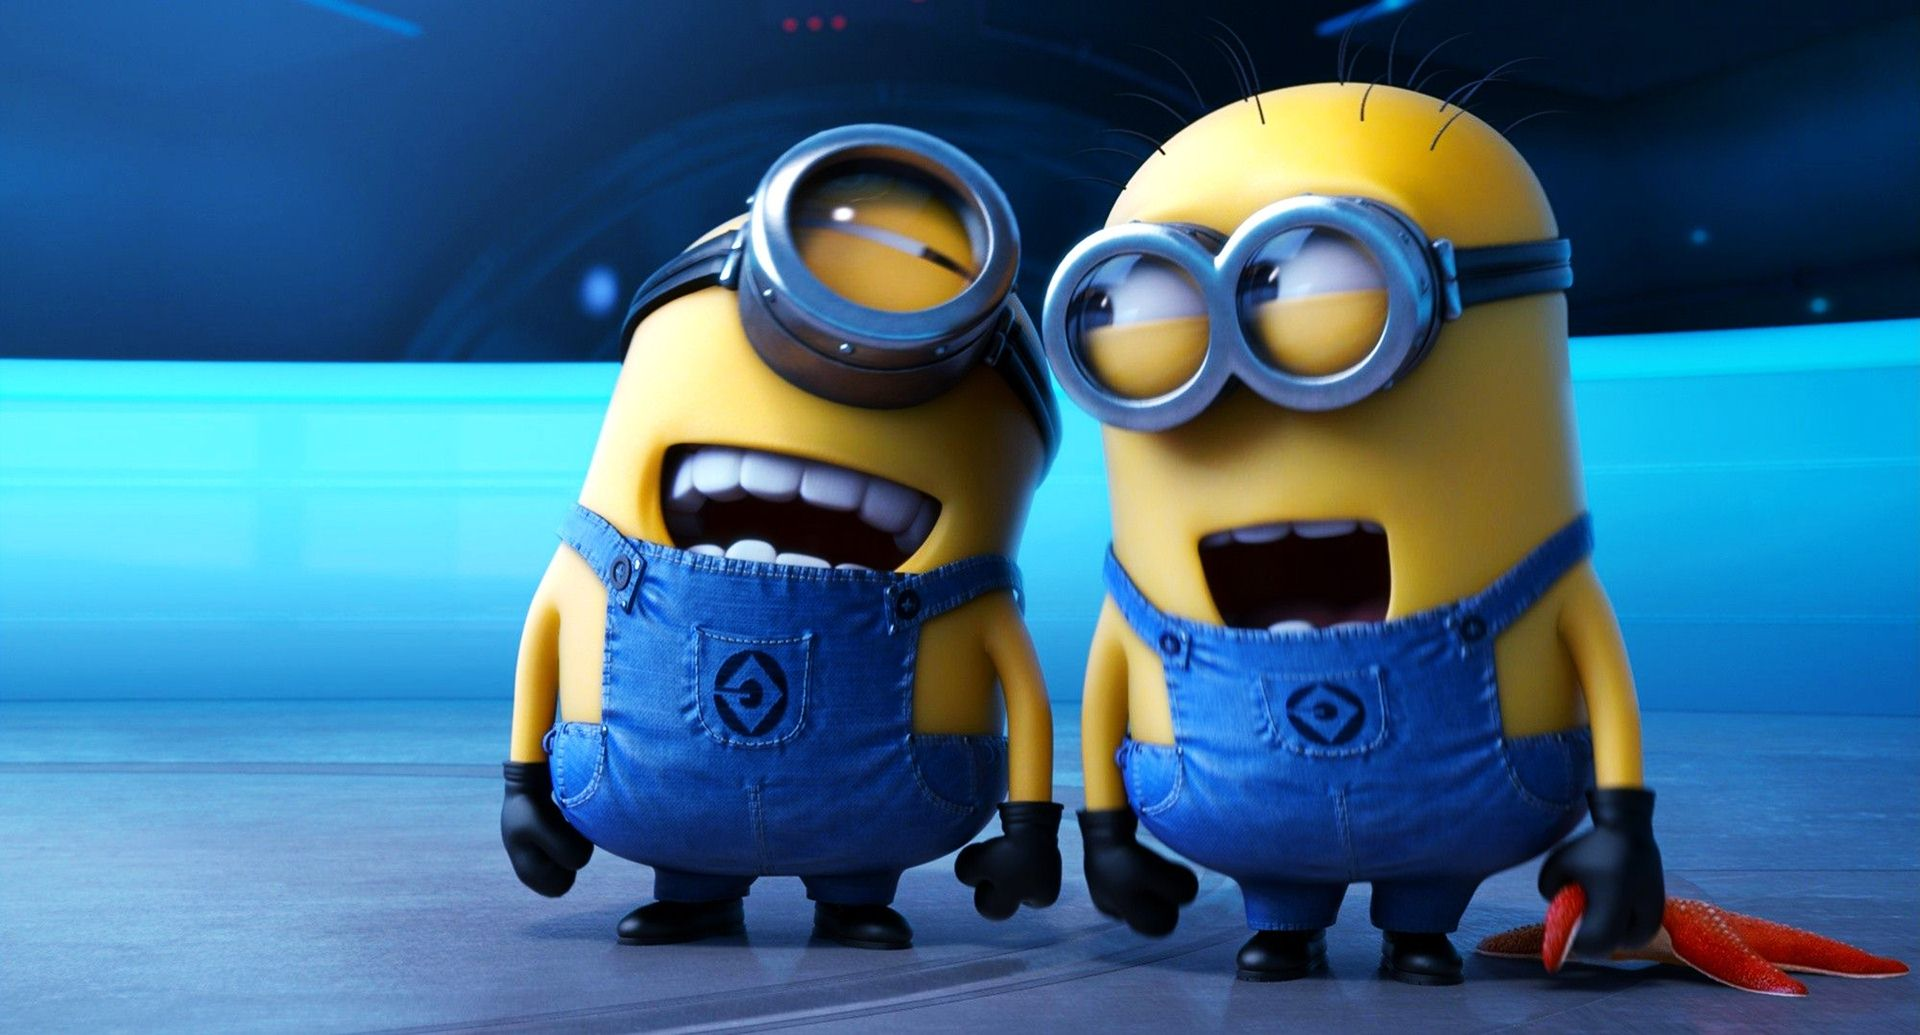 Funny Minions HD Wallpapers 300x250 Funny Minions Wallpapers Cartoon 1920x1035